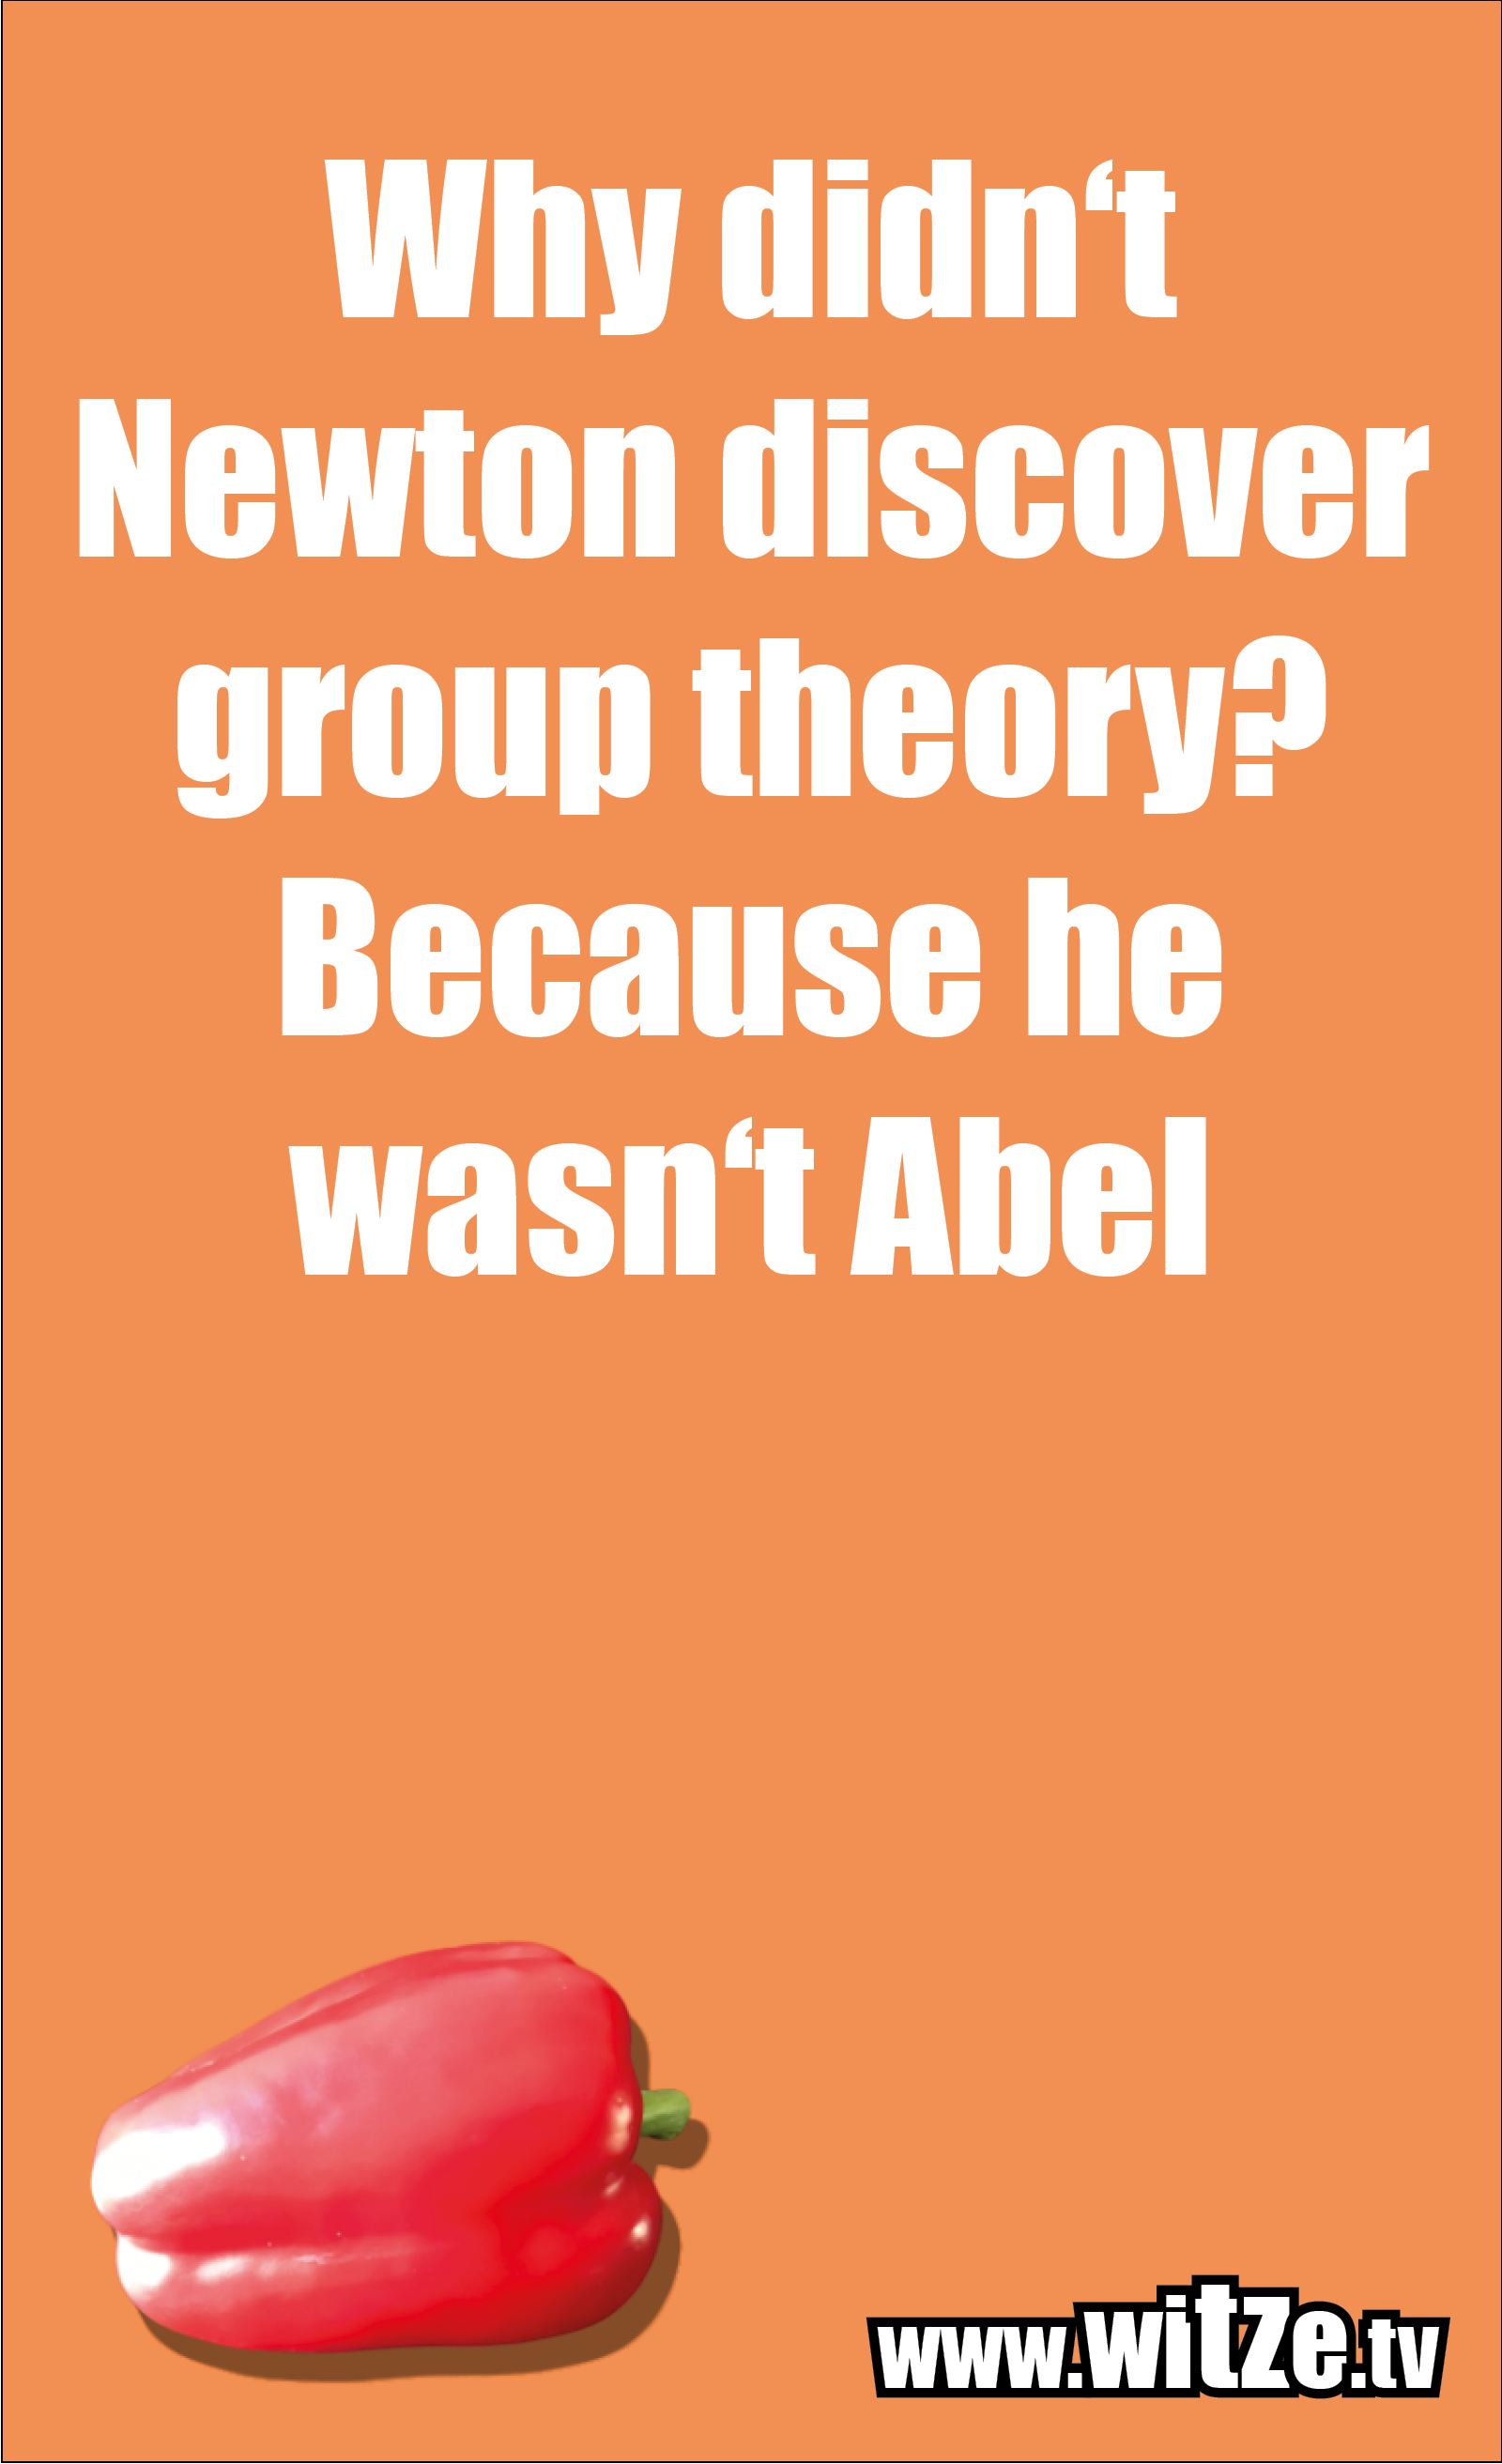 Math joke… Why didn't Newton discover group theory? Because he wasn't Abel